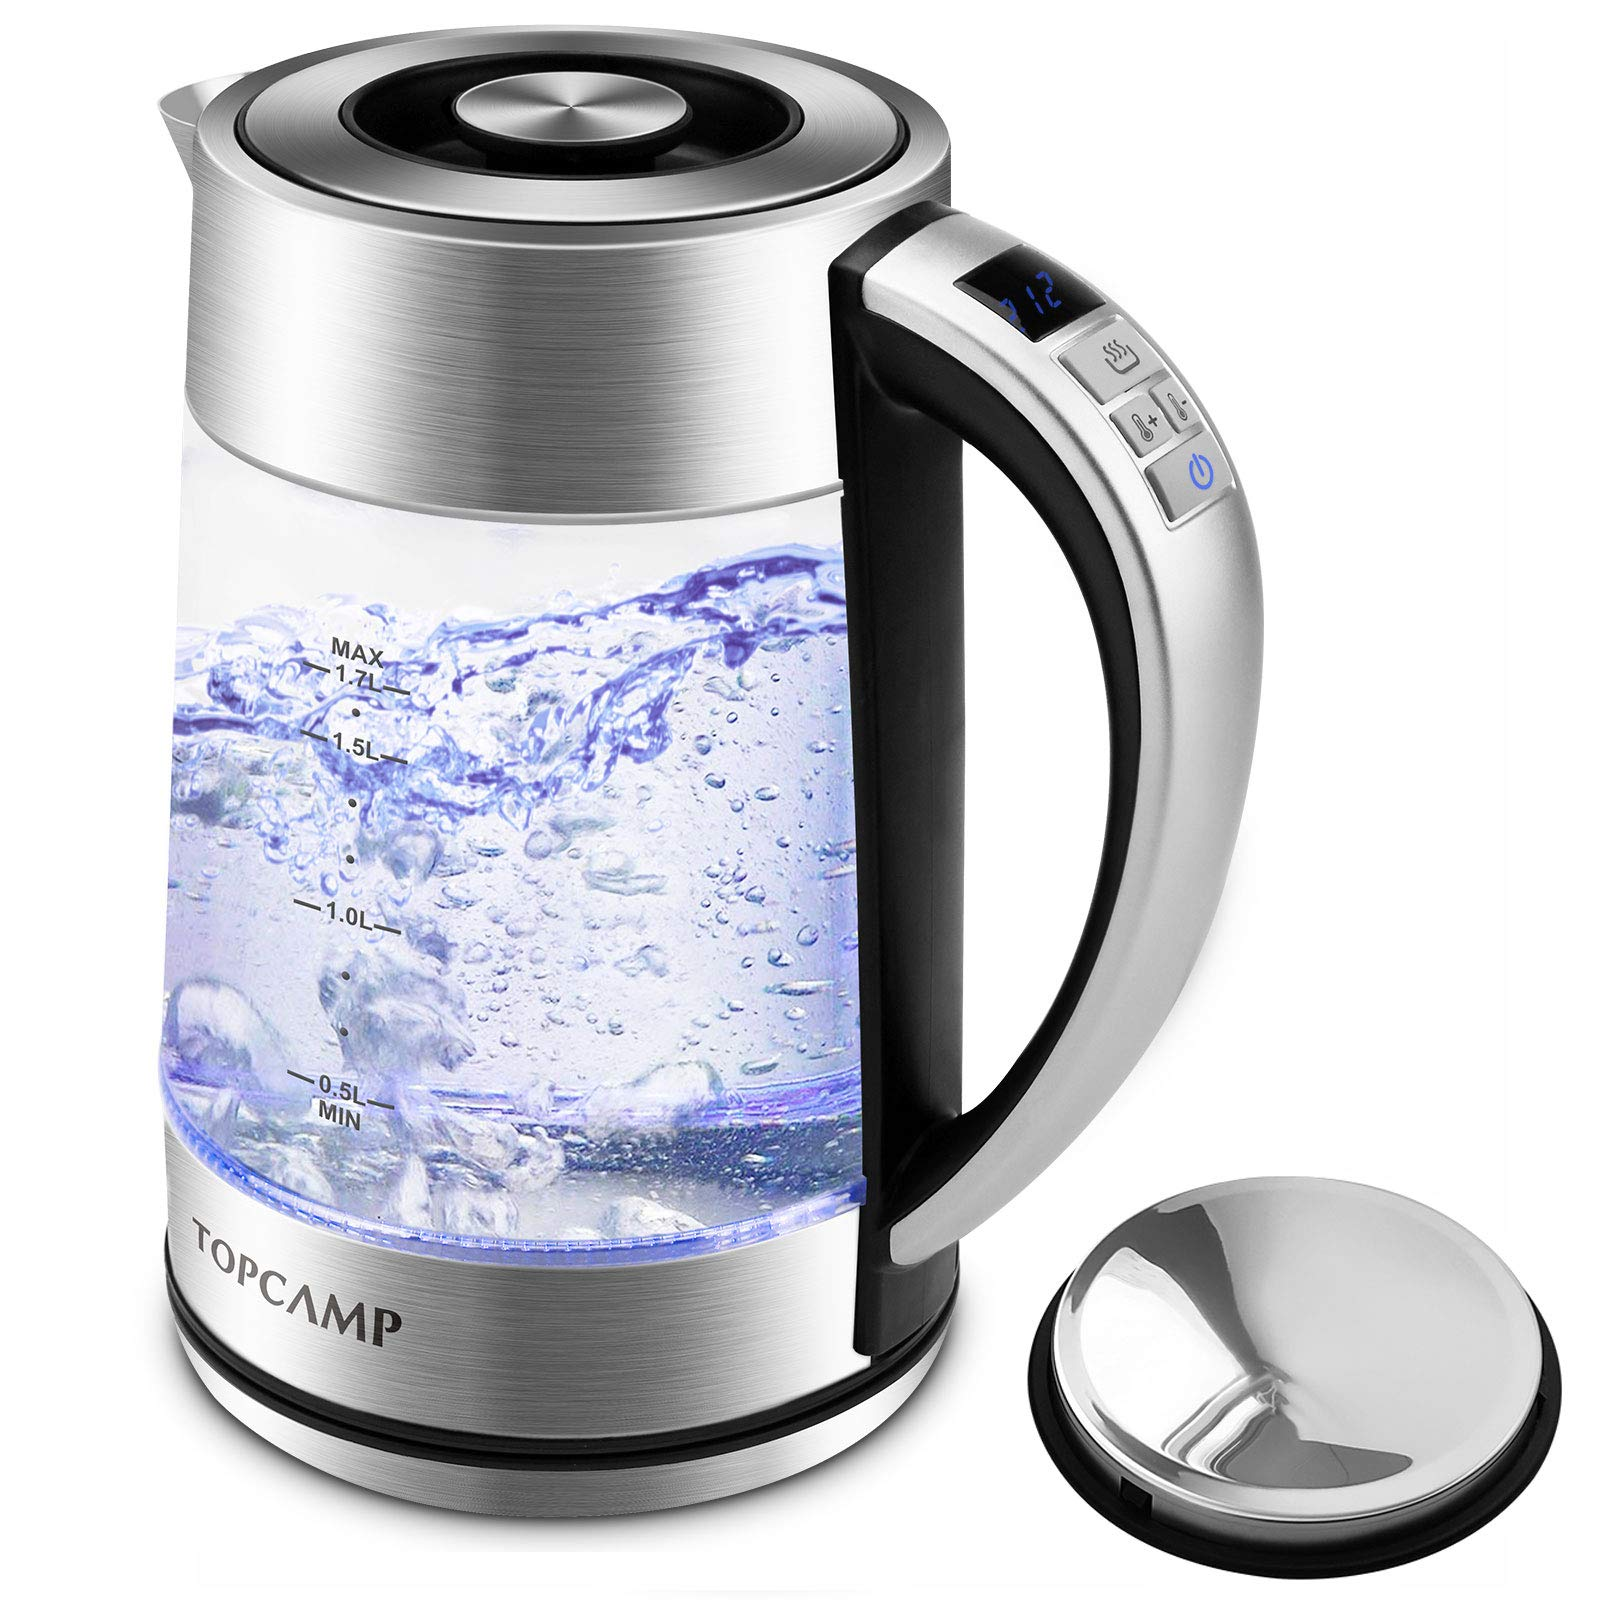 Glass Electric Kettle Water Heater Temperature Control with Stainless Steel Lid, 1.7L Fast Boiling Water Kettle With Led Display - Keep Warm/ Quick Biol/ BPA-Free ( Boil-Dry Protection / Auto Shut-off) by TopCamp